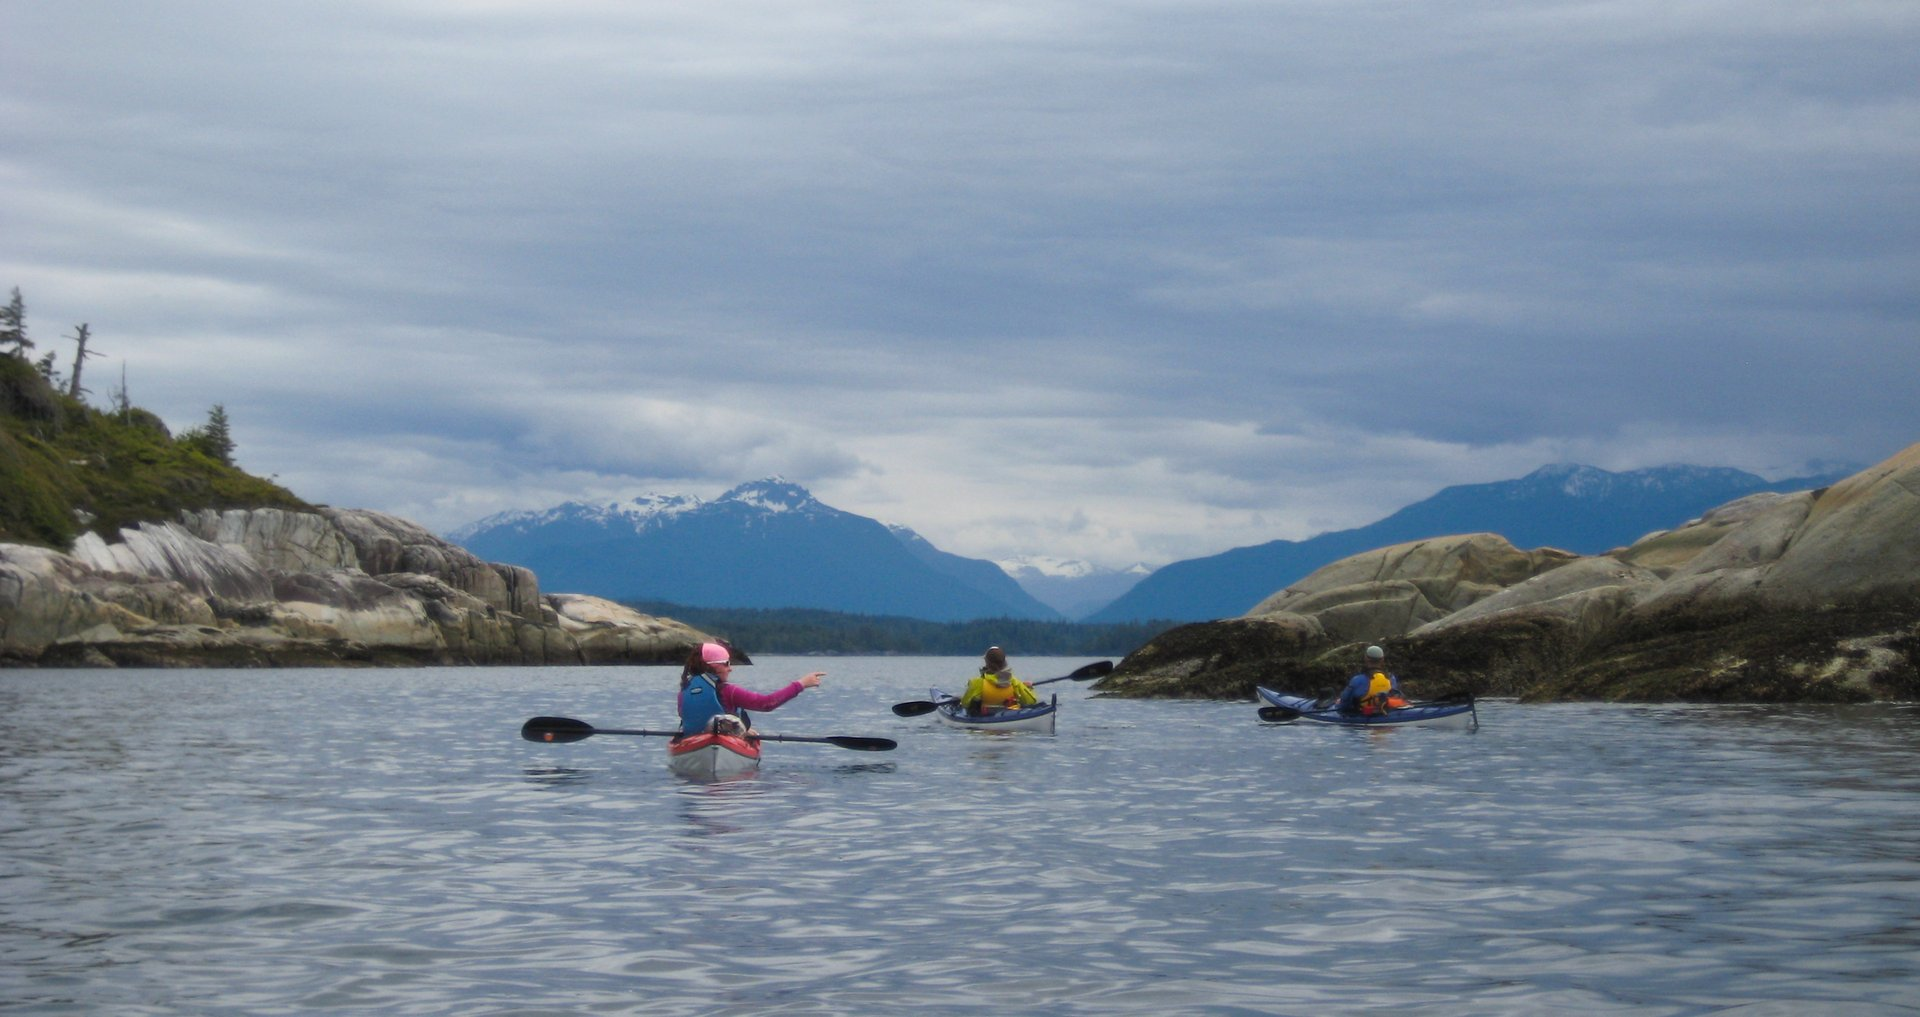 Kayaking around Vancouver Island 2020